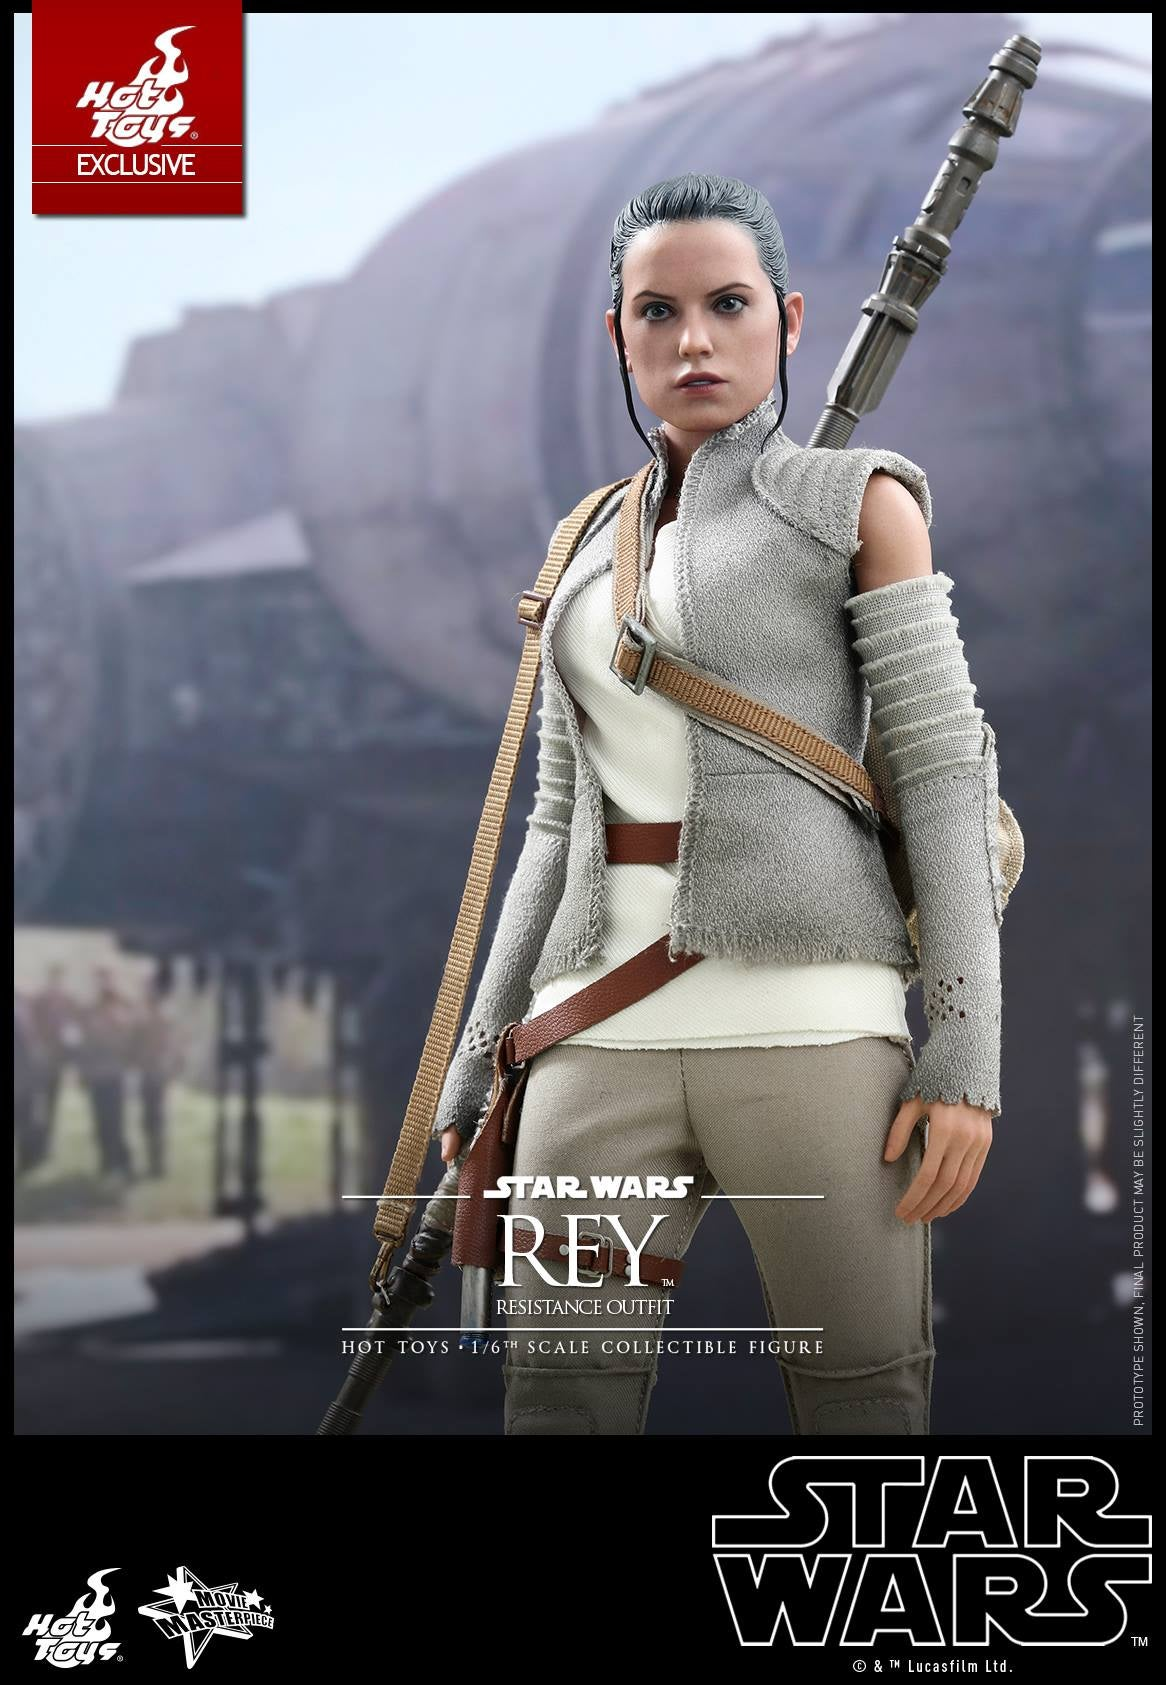 Hot Toys' New Rey Figure Is More Bewilderingly Perfect Than Usual